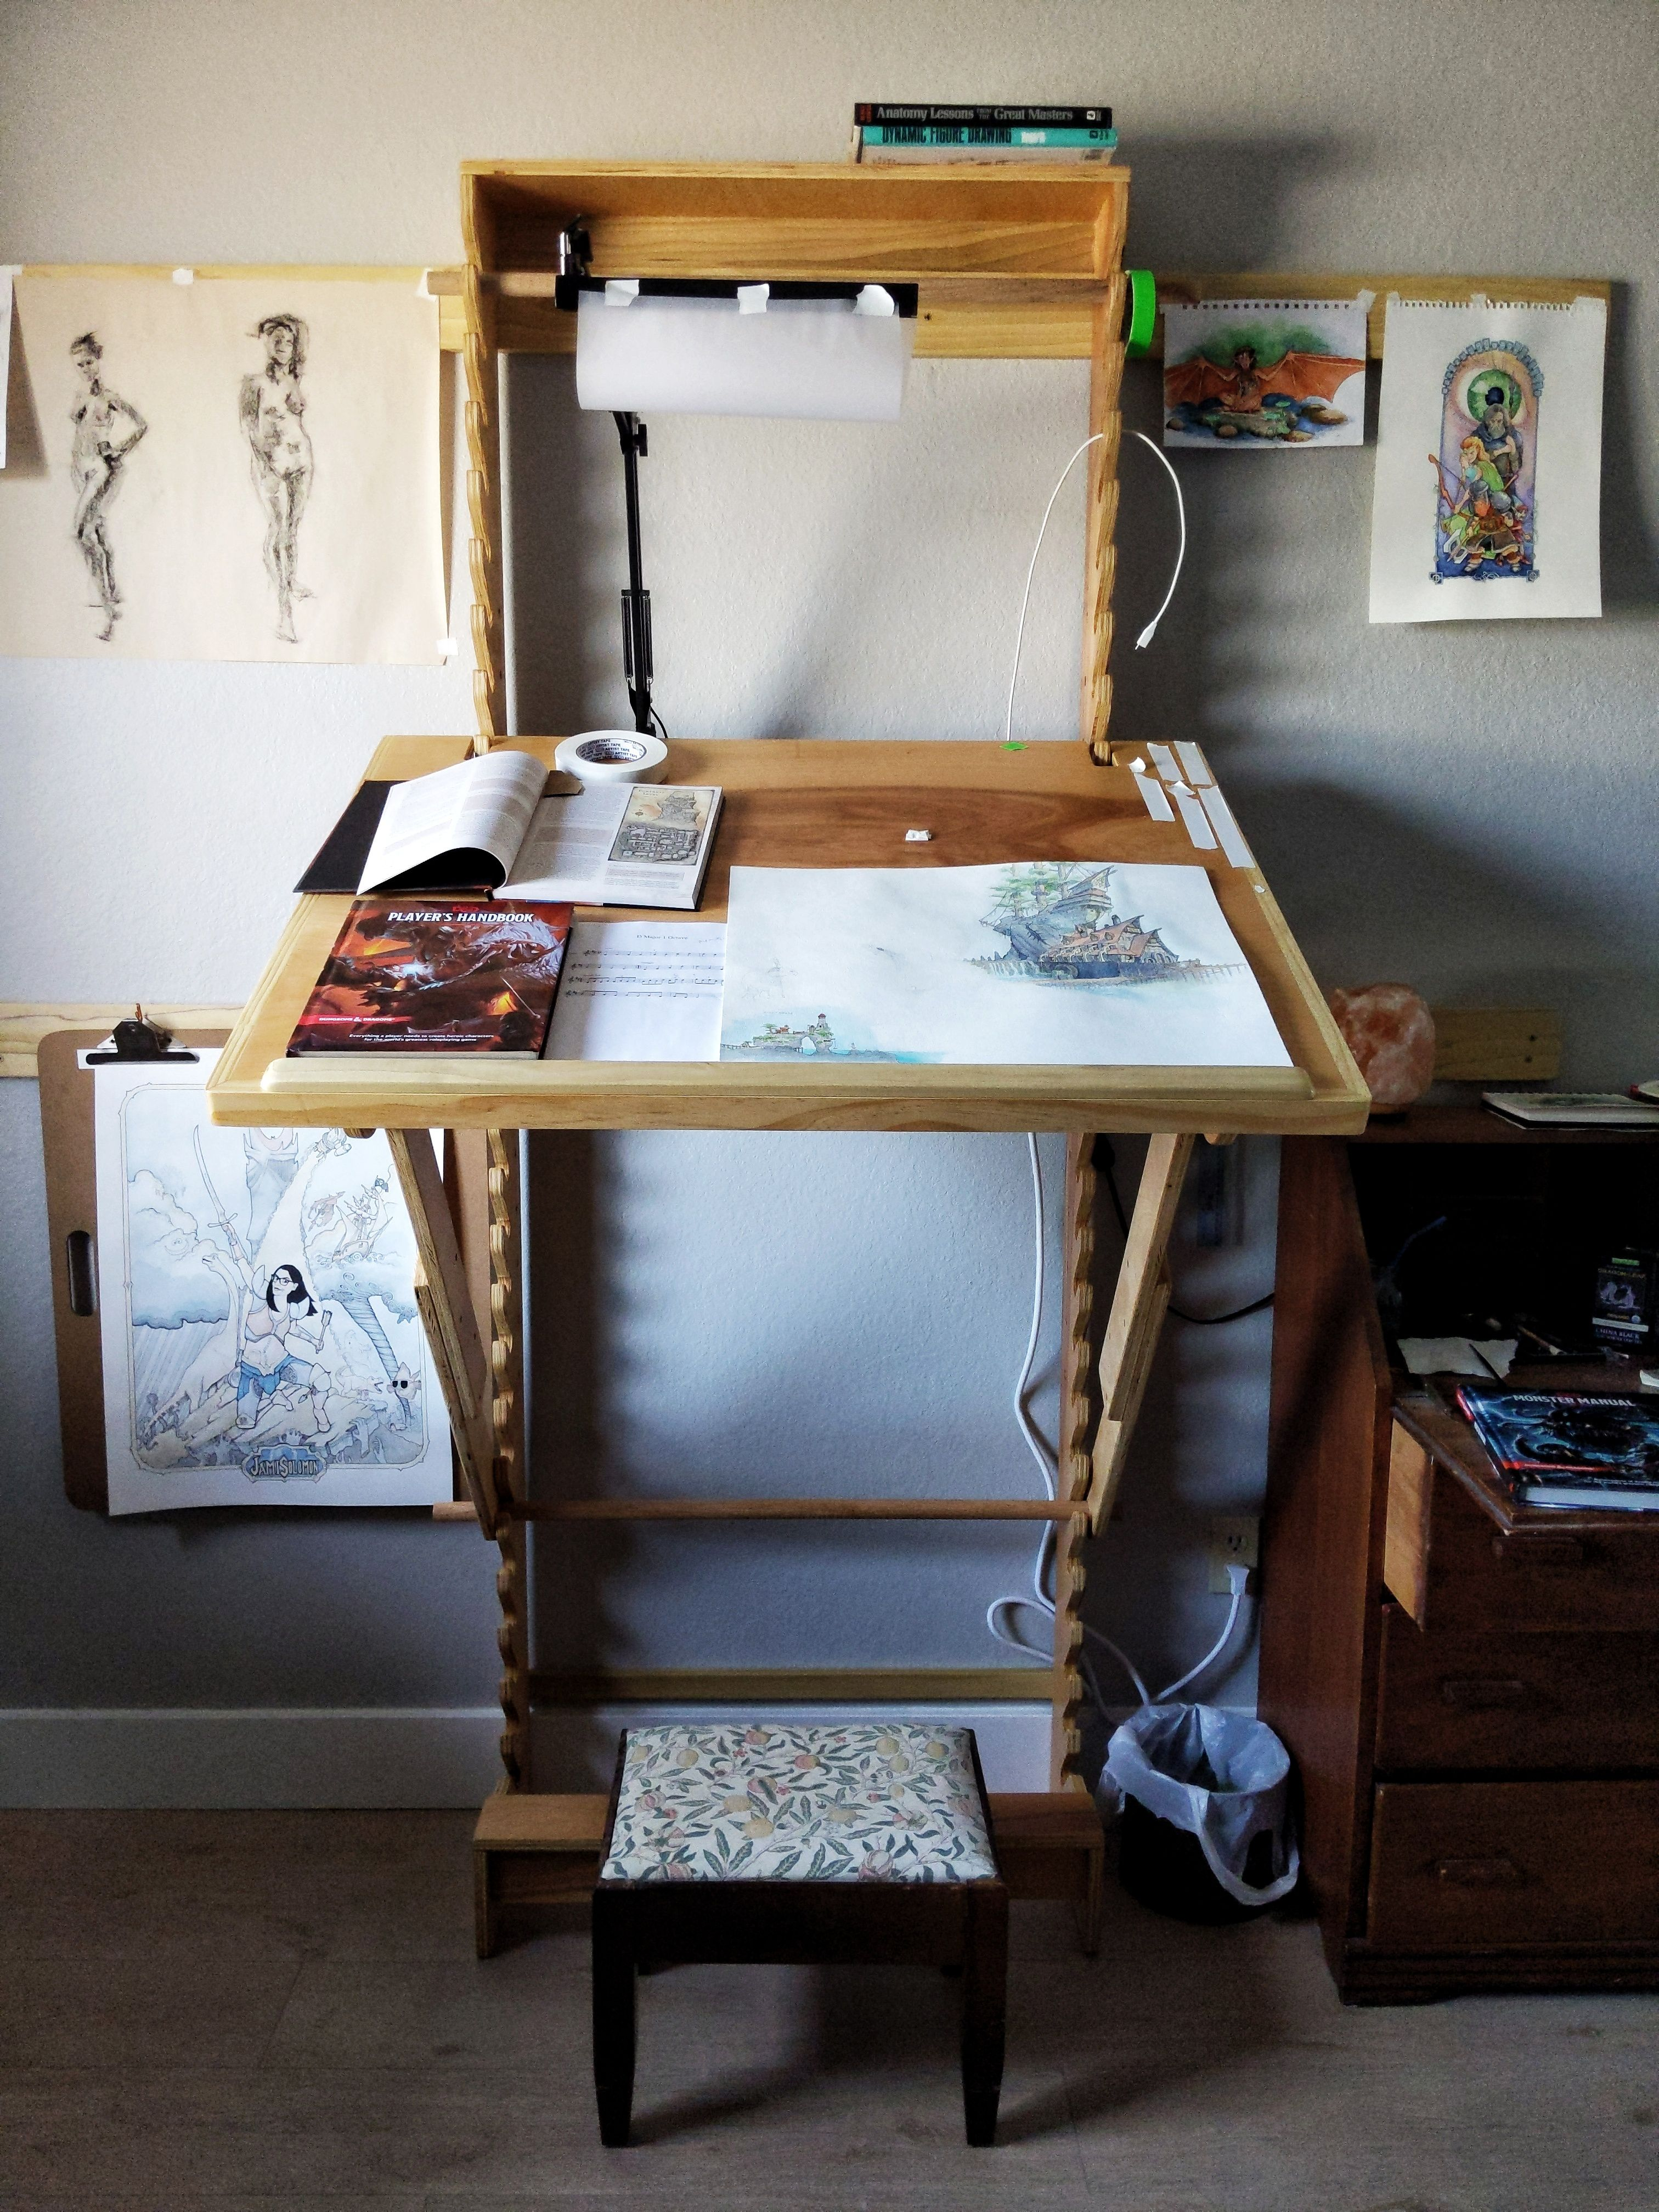 Brilliant Diy Art Desk With Adjustable Height And Angle Cool Things Download Free Architecture Designs Embacsunscenecom